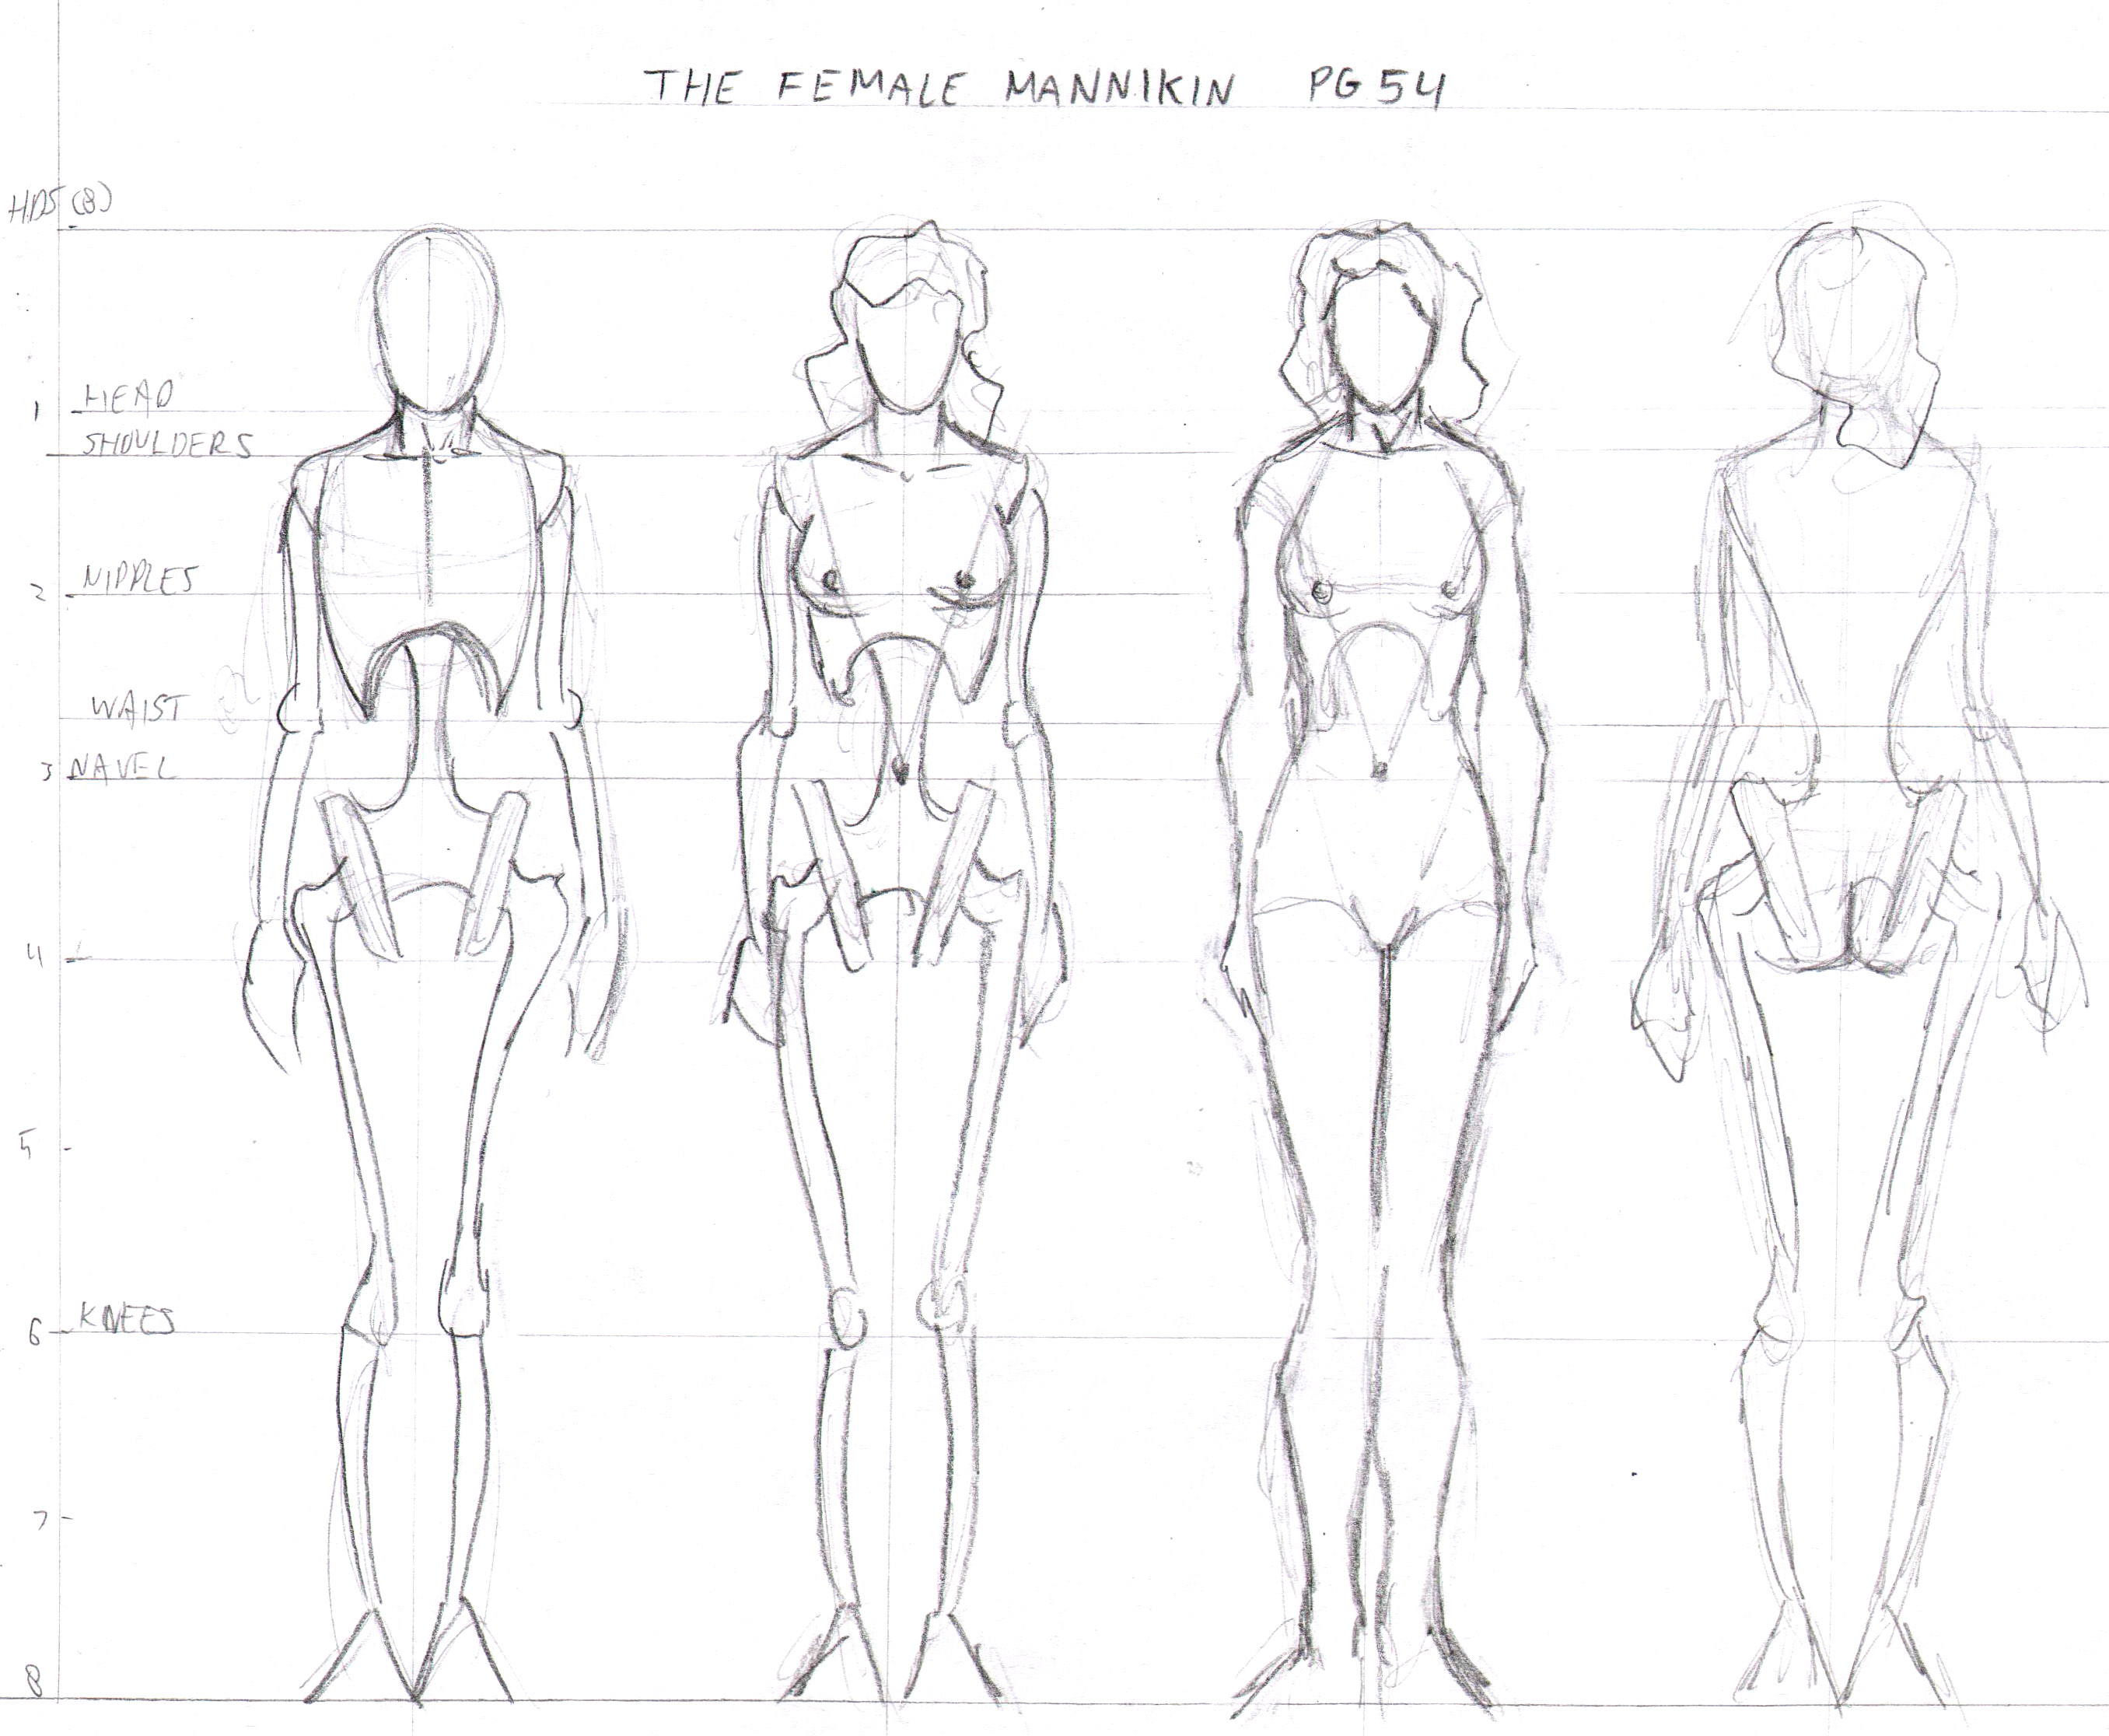 Drawn skeleton female skeleton Personal student course/the Measuring the